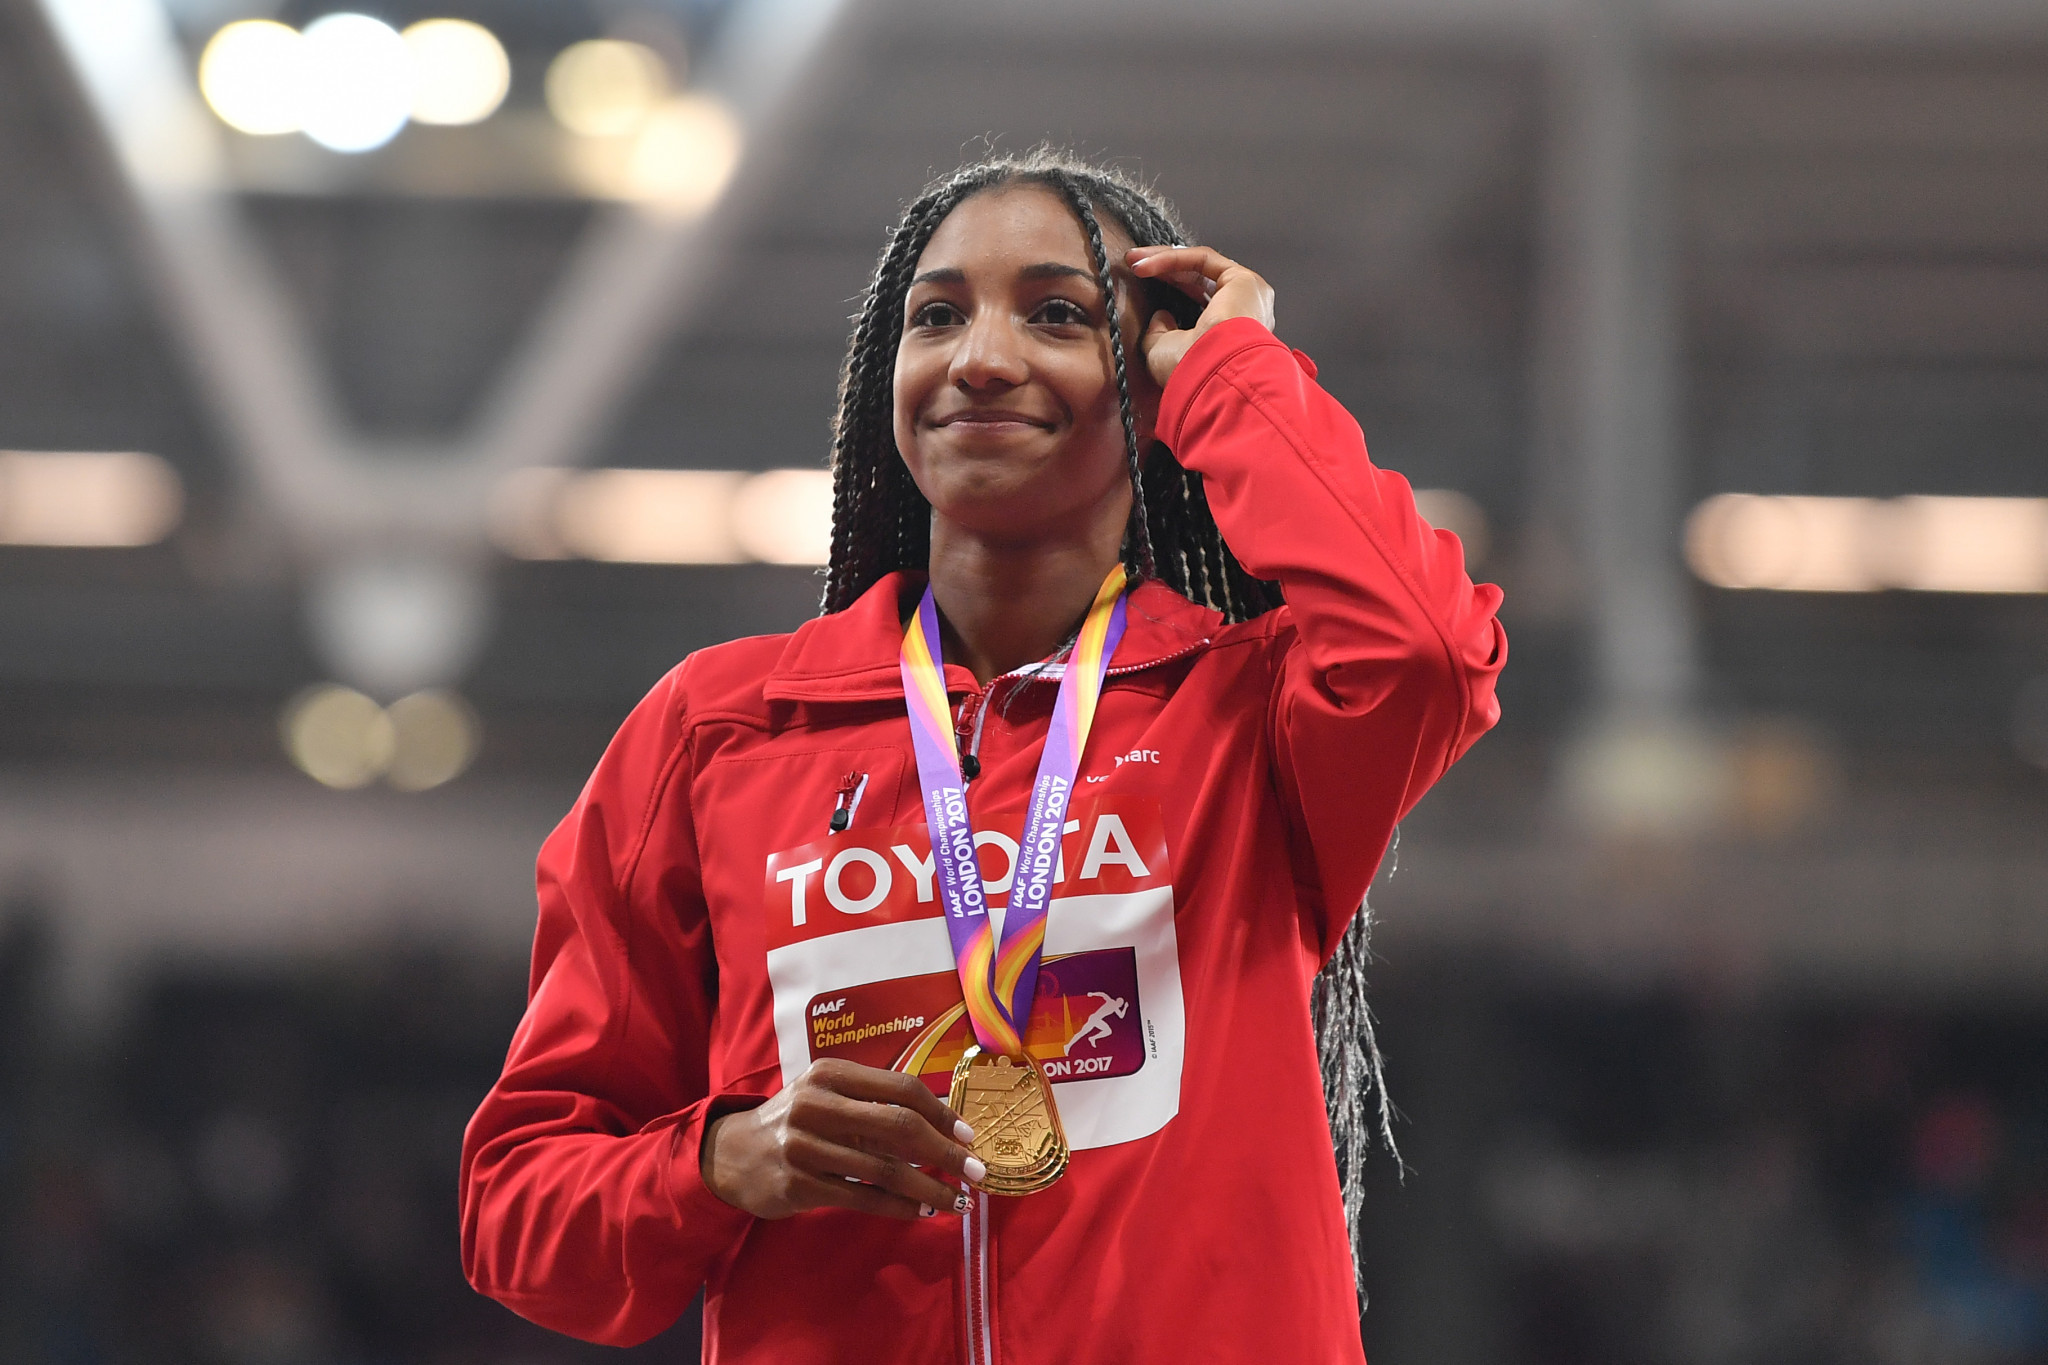 Nafissatou Thiam, the first Belgian to win a gold medal in a World Athletics Championship, is among the nominees for Female World Athlete of the Year ©Getty Images